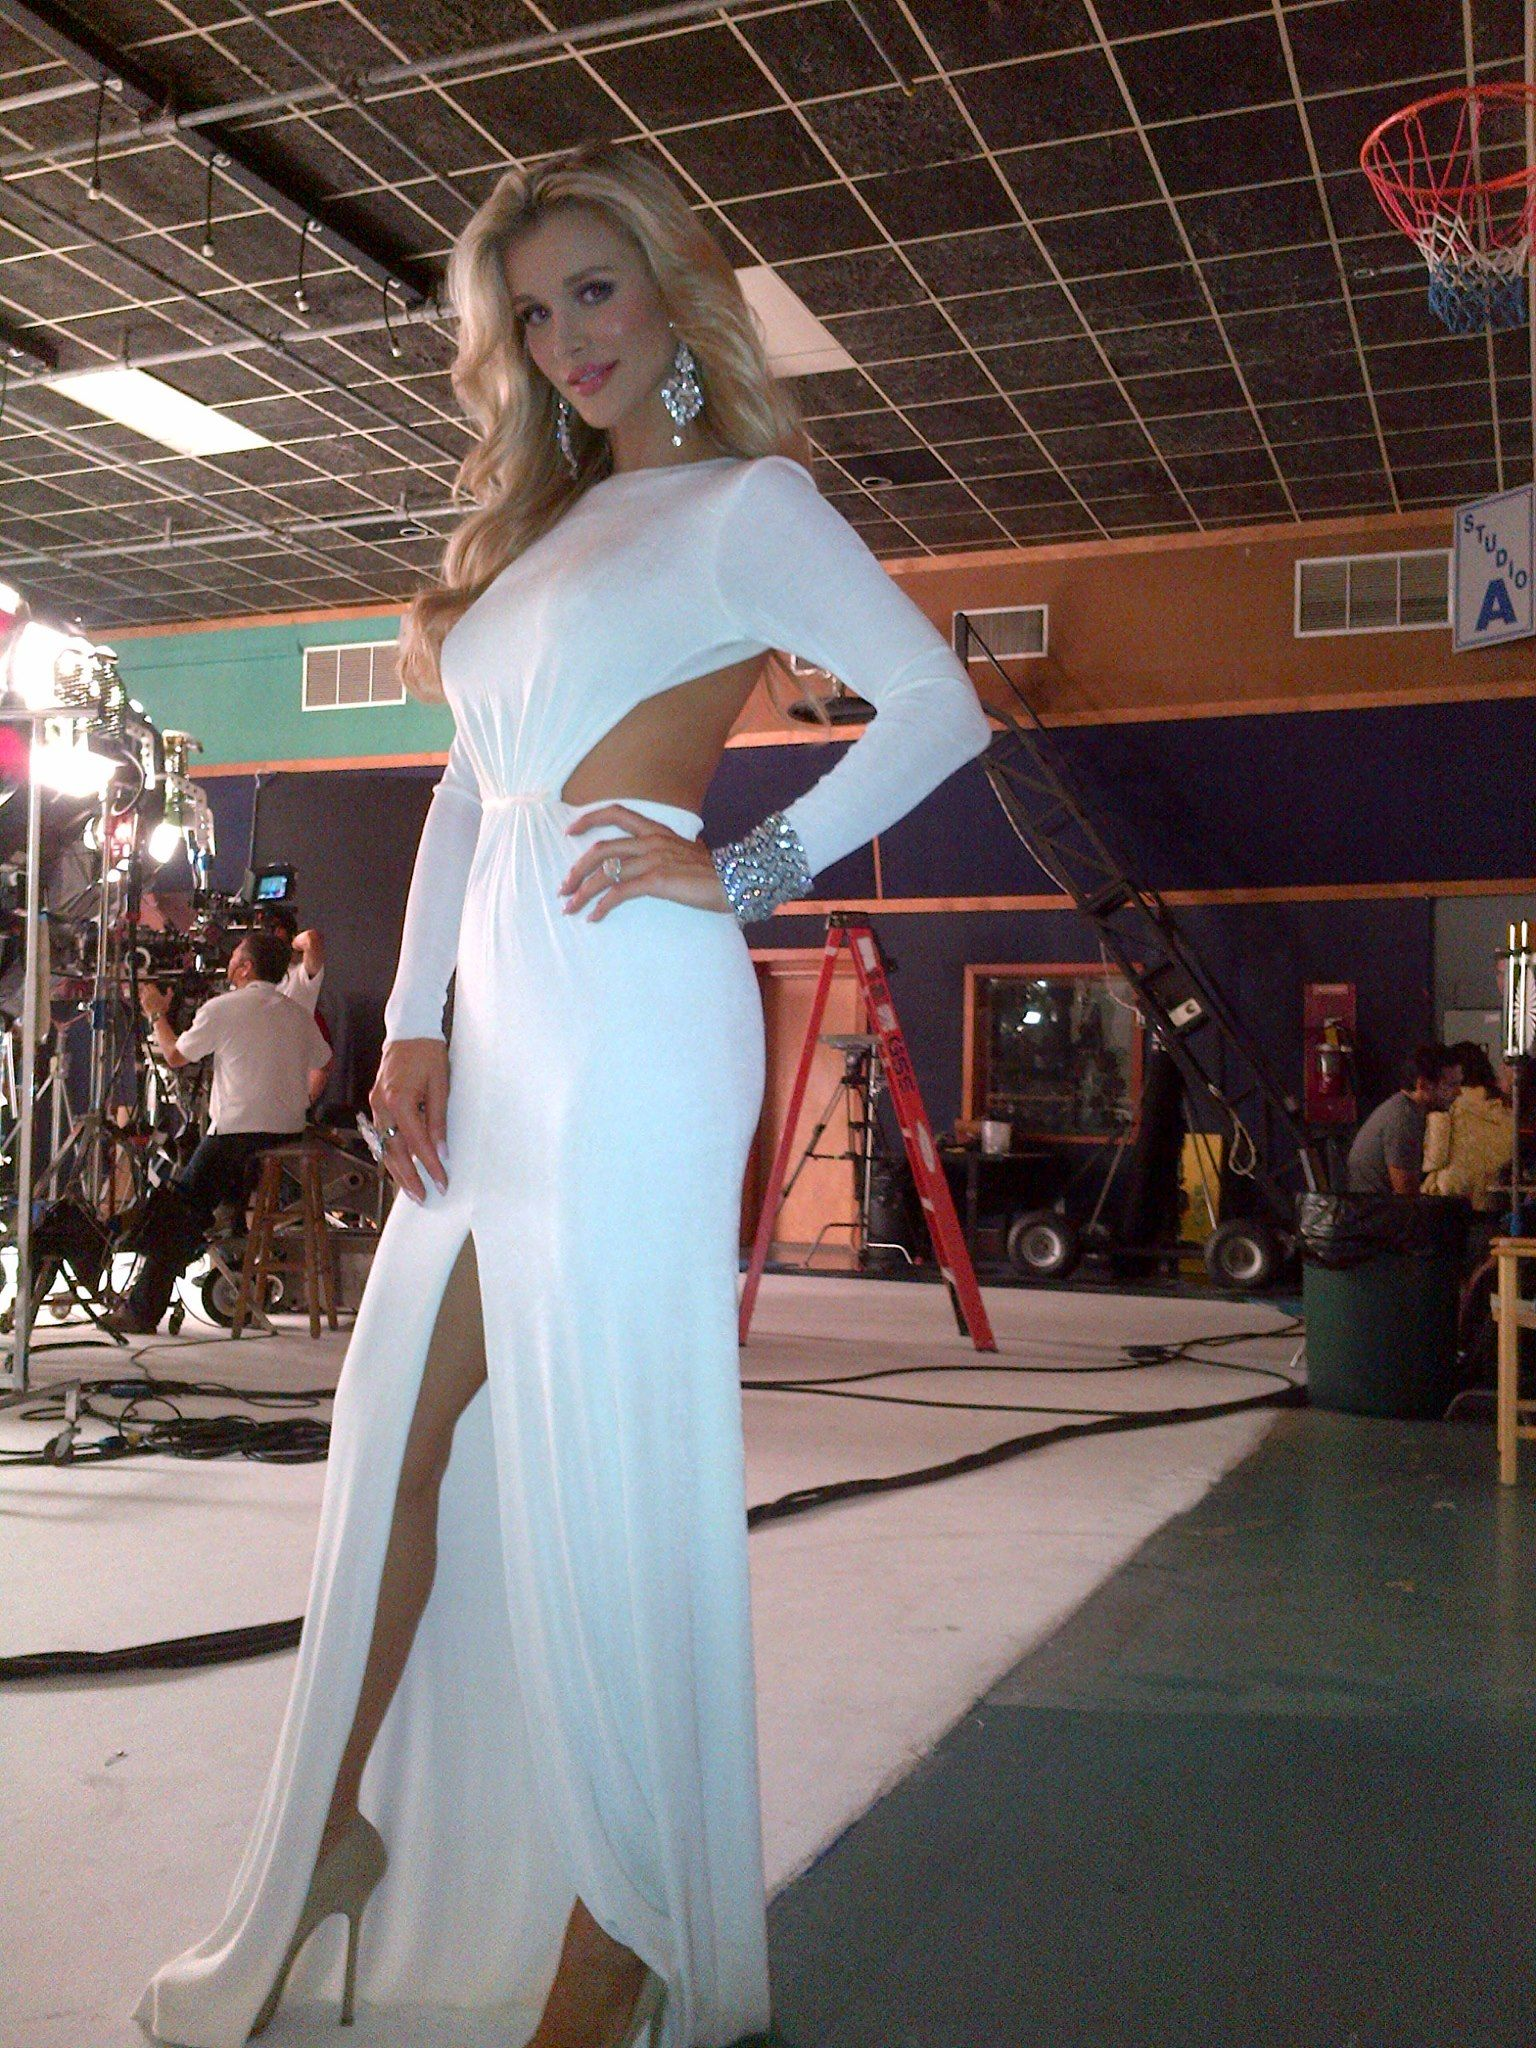 Joanna krupa the real housewives of miami opening credits in